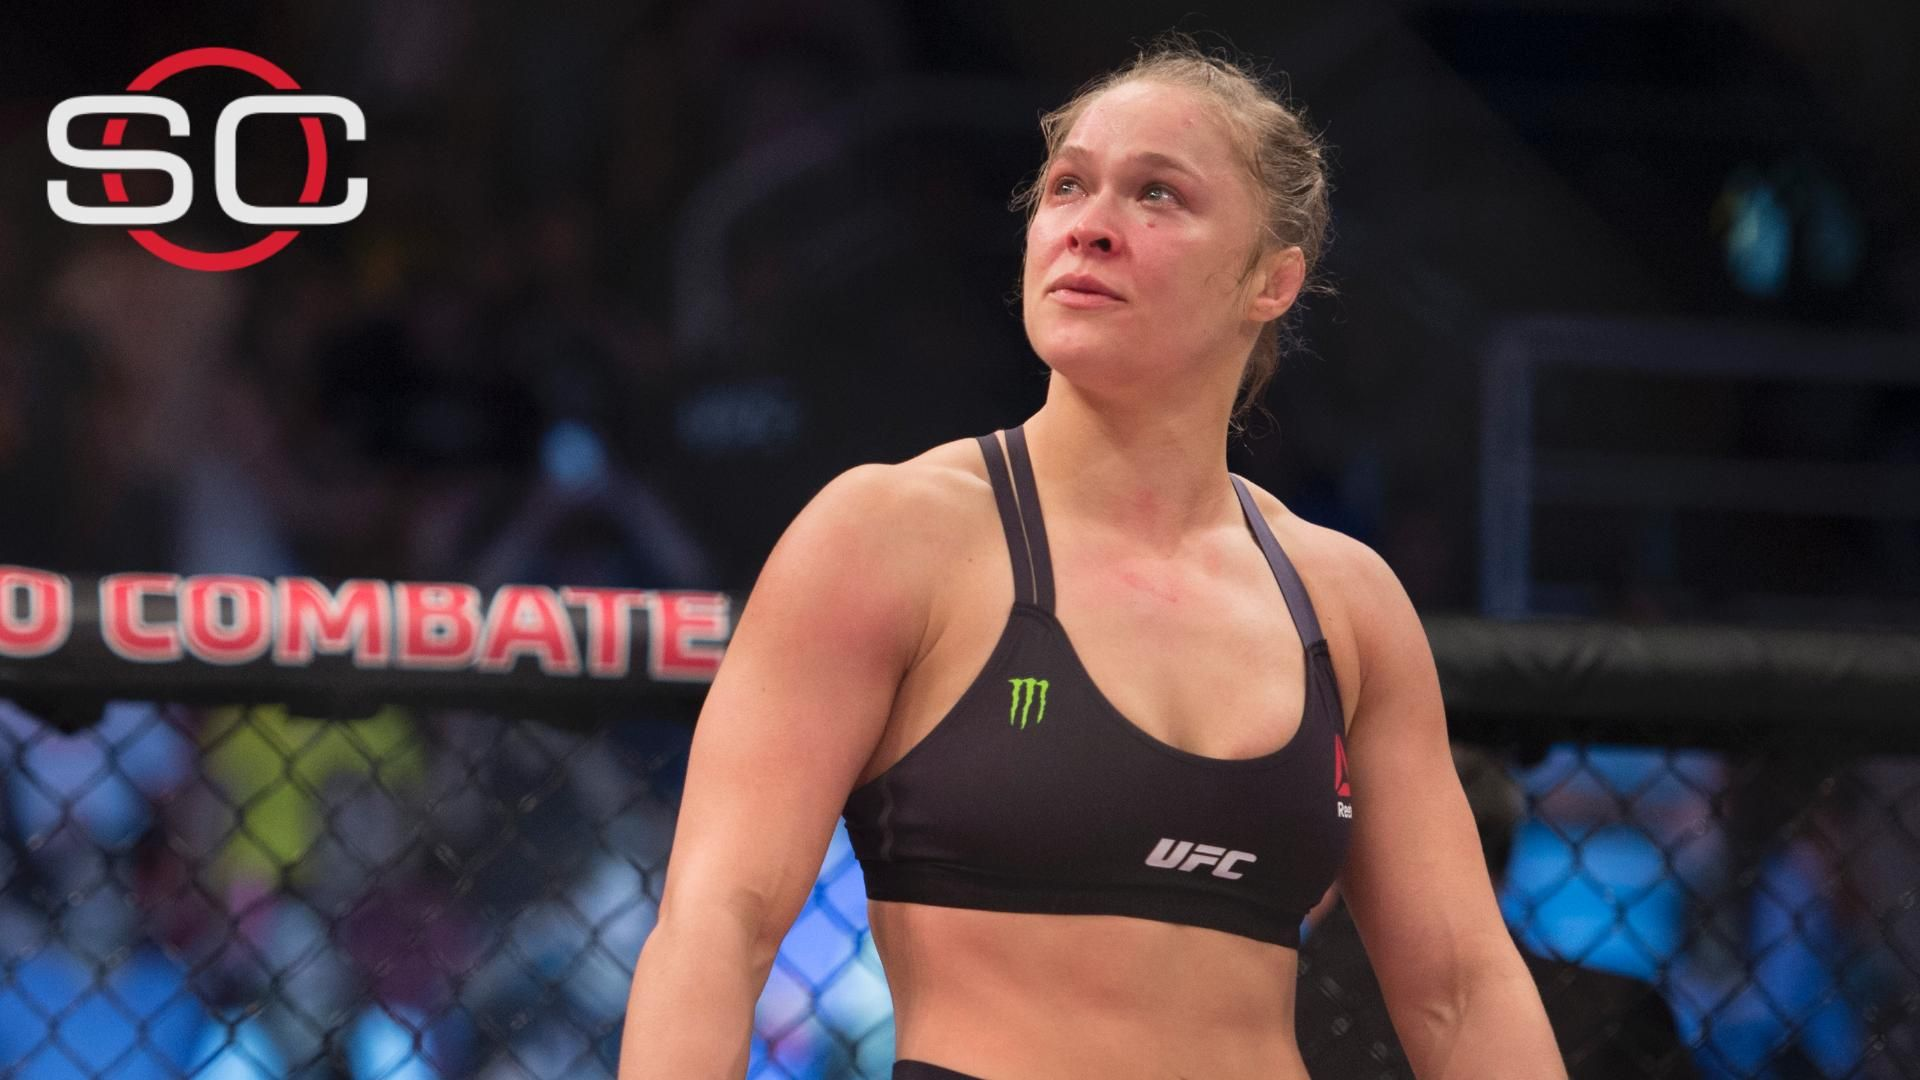 https://secure.espncdn.com/combiner/i?img=/media/motion/2016/0204/dm_160204_mma_rousey_return/dm_160204_mma_rousey_return.jpg